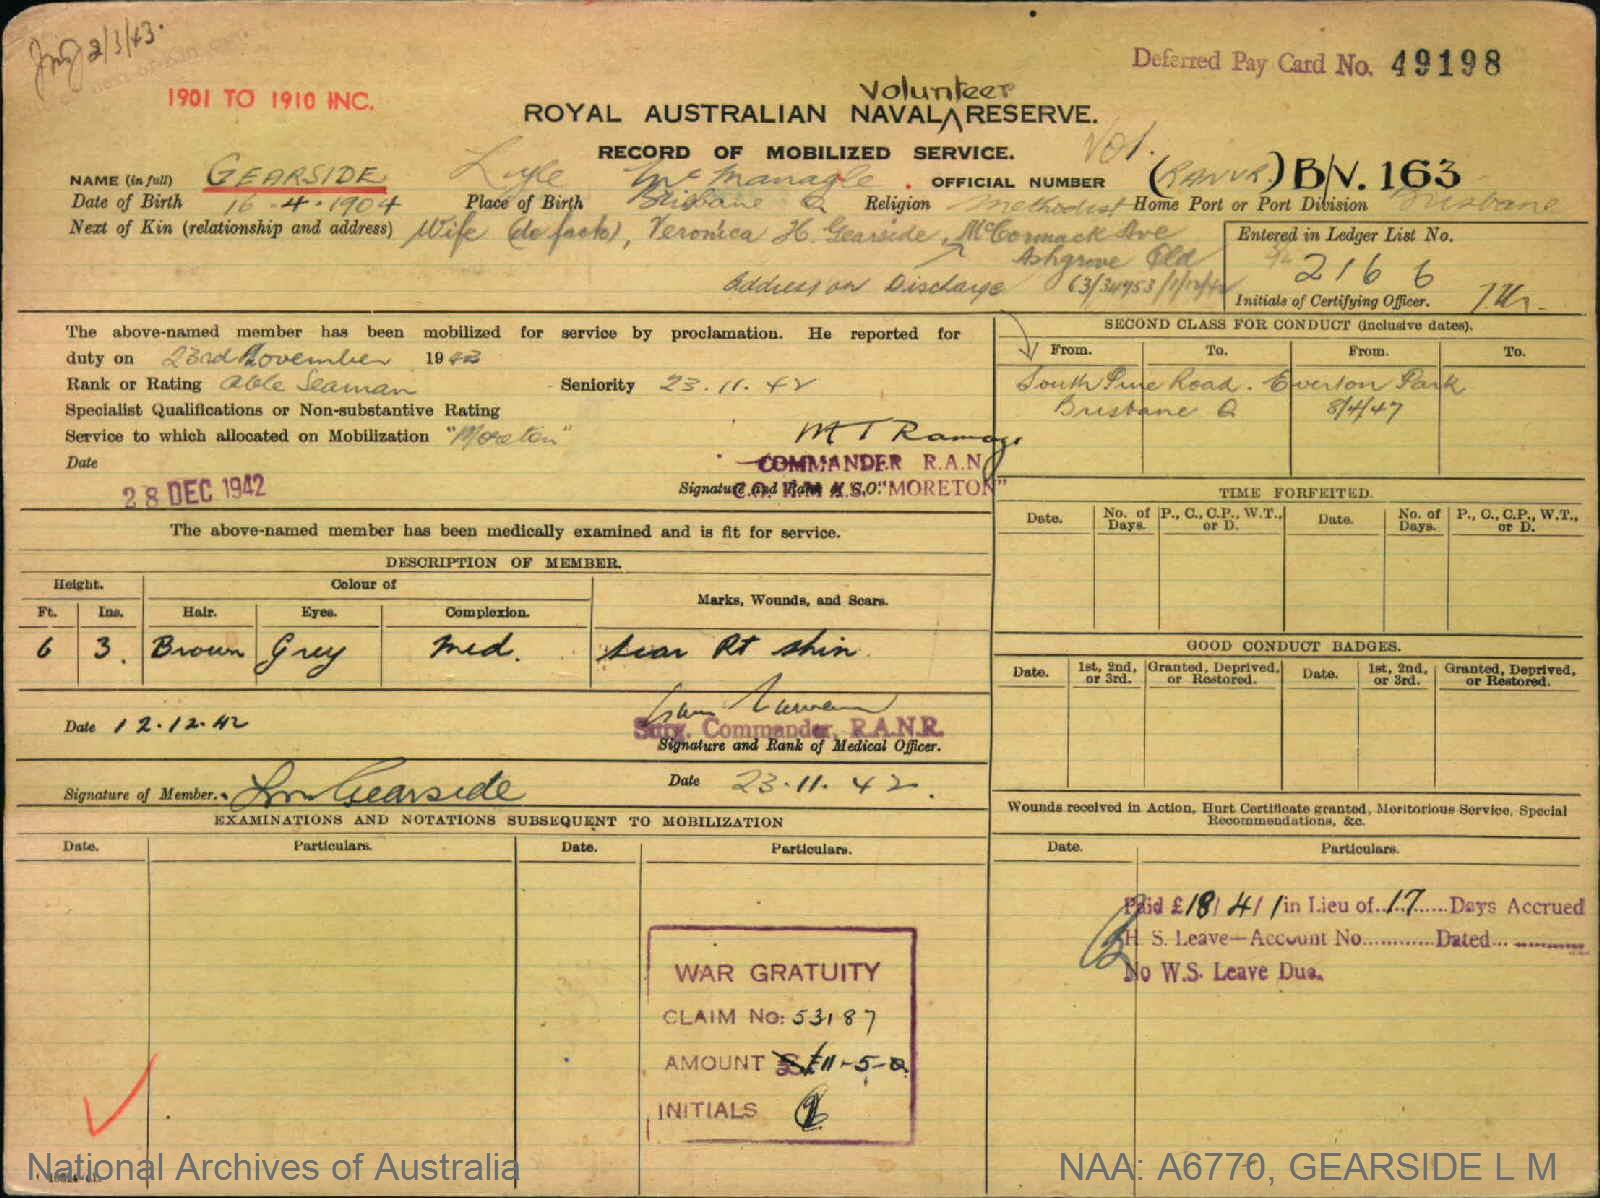 GEARSIDE LYLE MCMANAGLE : Service Number - B/V163 : Date of birth - 16 Apr 1904 : Place of birth - BRISBANE QLD : Place of enlistment - BRISBANE QLD : Next of Kin - GEARSIDE VERONICA